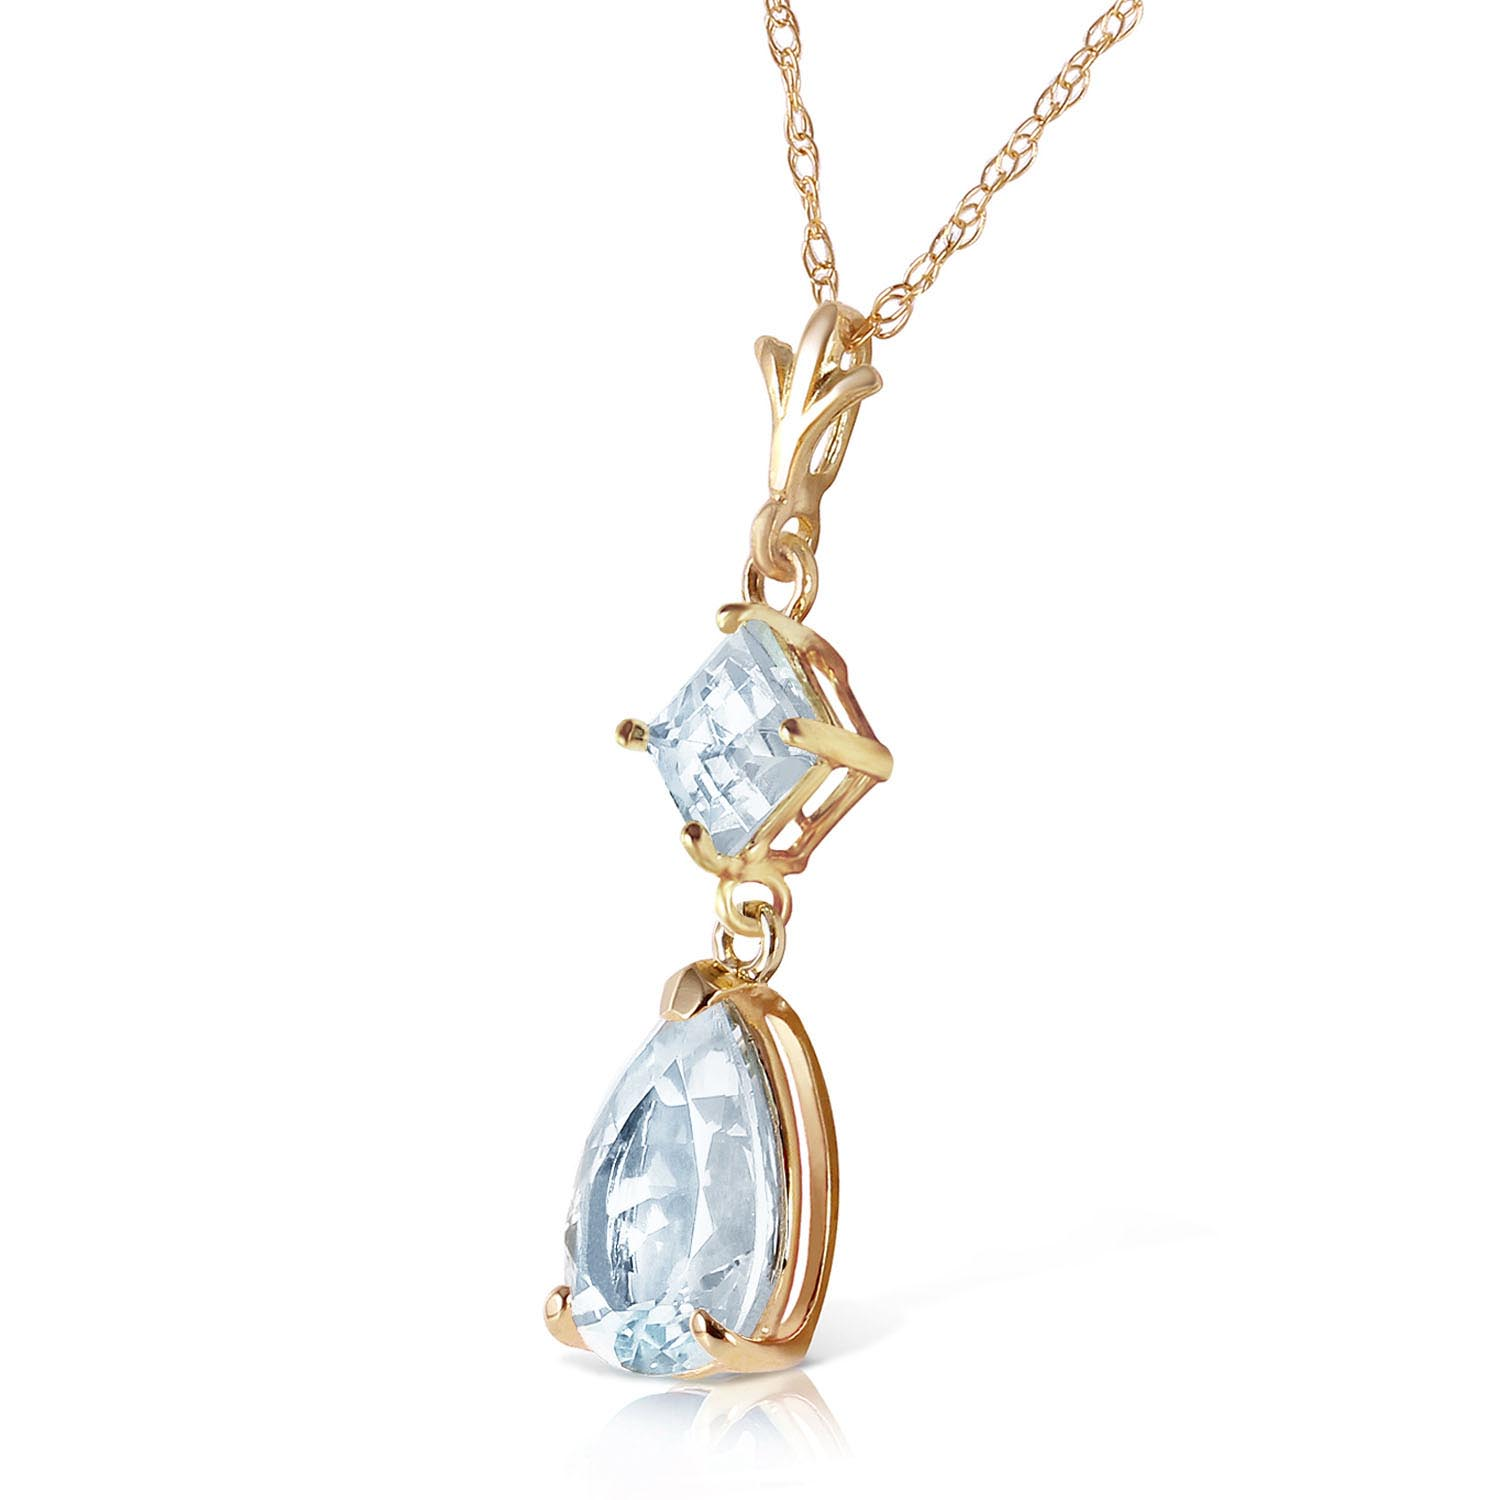 Aquamarine Droplet Pendant Necklace 2.0ctw in 9ct Gold